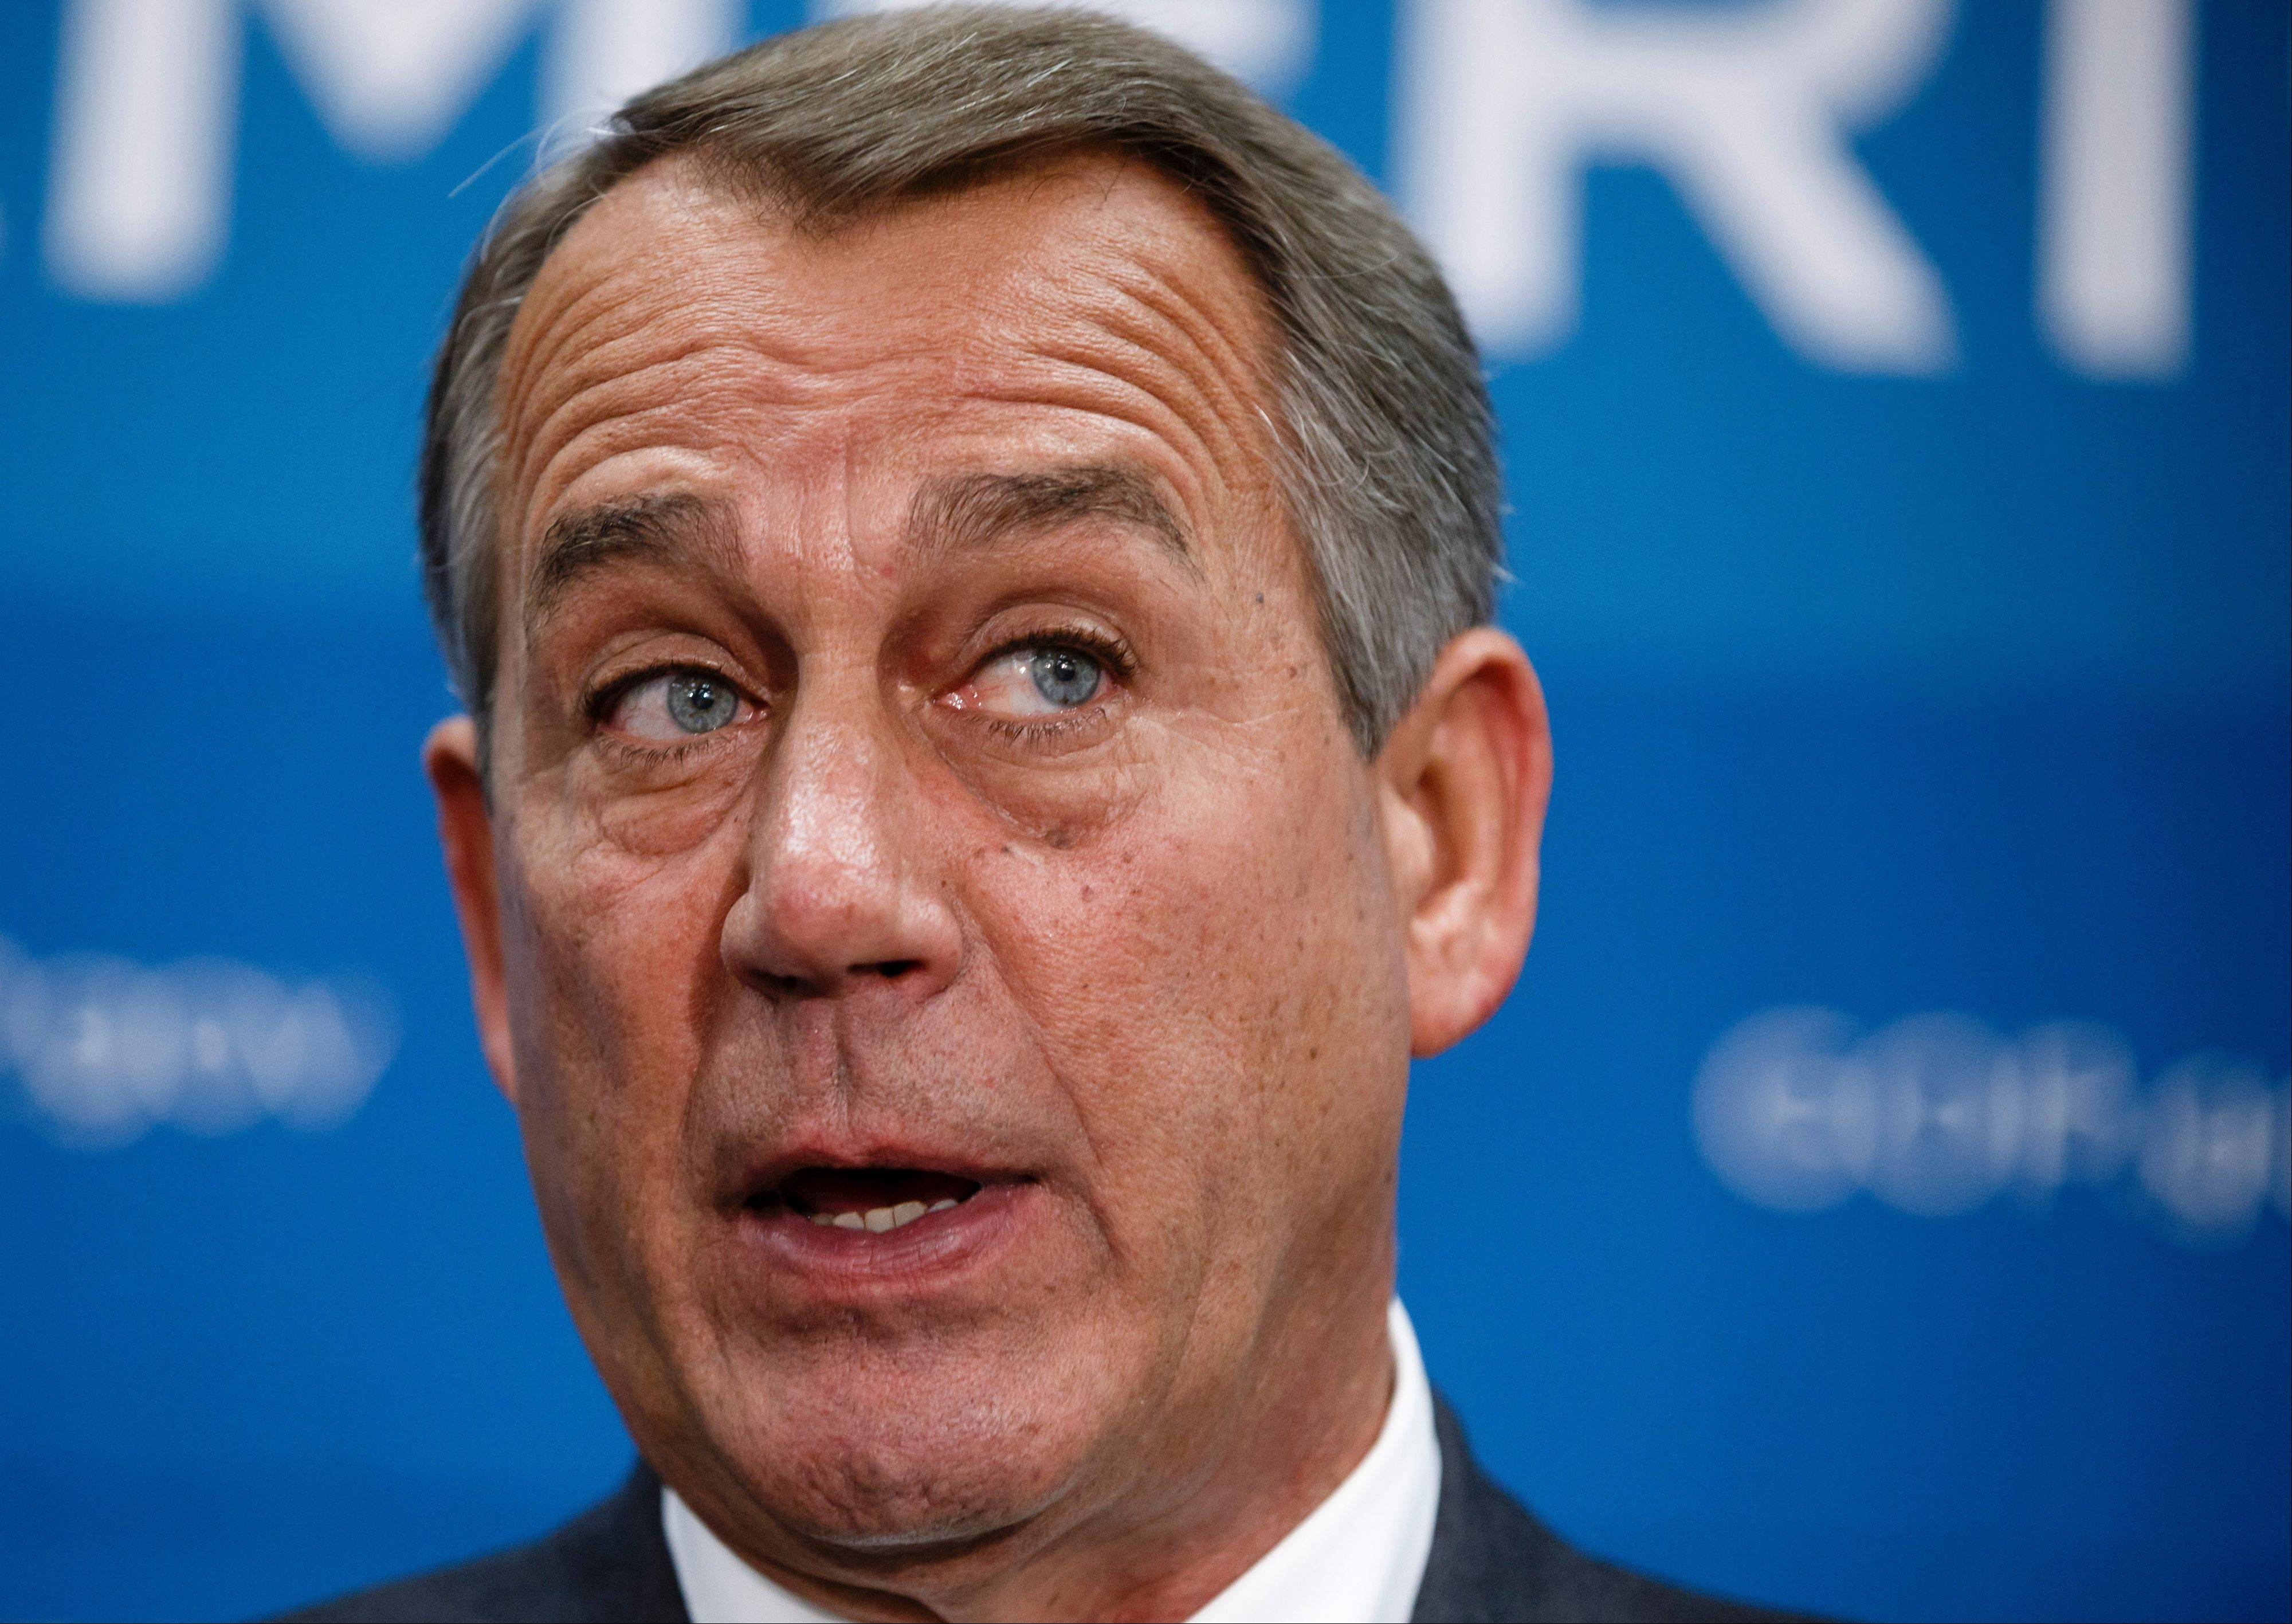 House Speaker John Boehner speaks to reporters Thursday after a closed-door strategy session. Pressure is building on fractious Republicans to prevent a partial government shutdown.